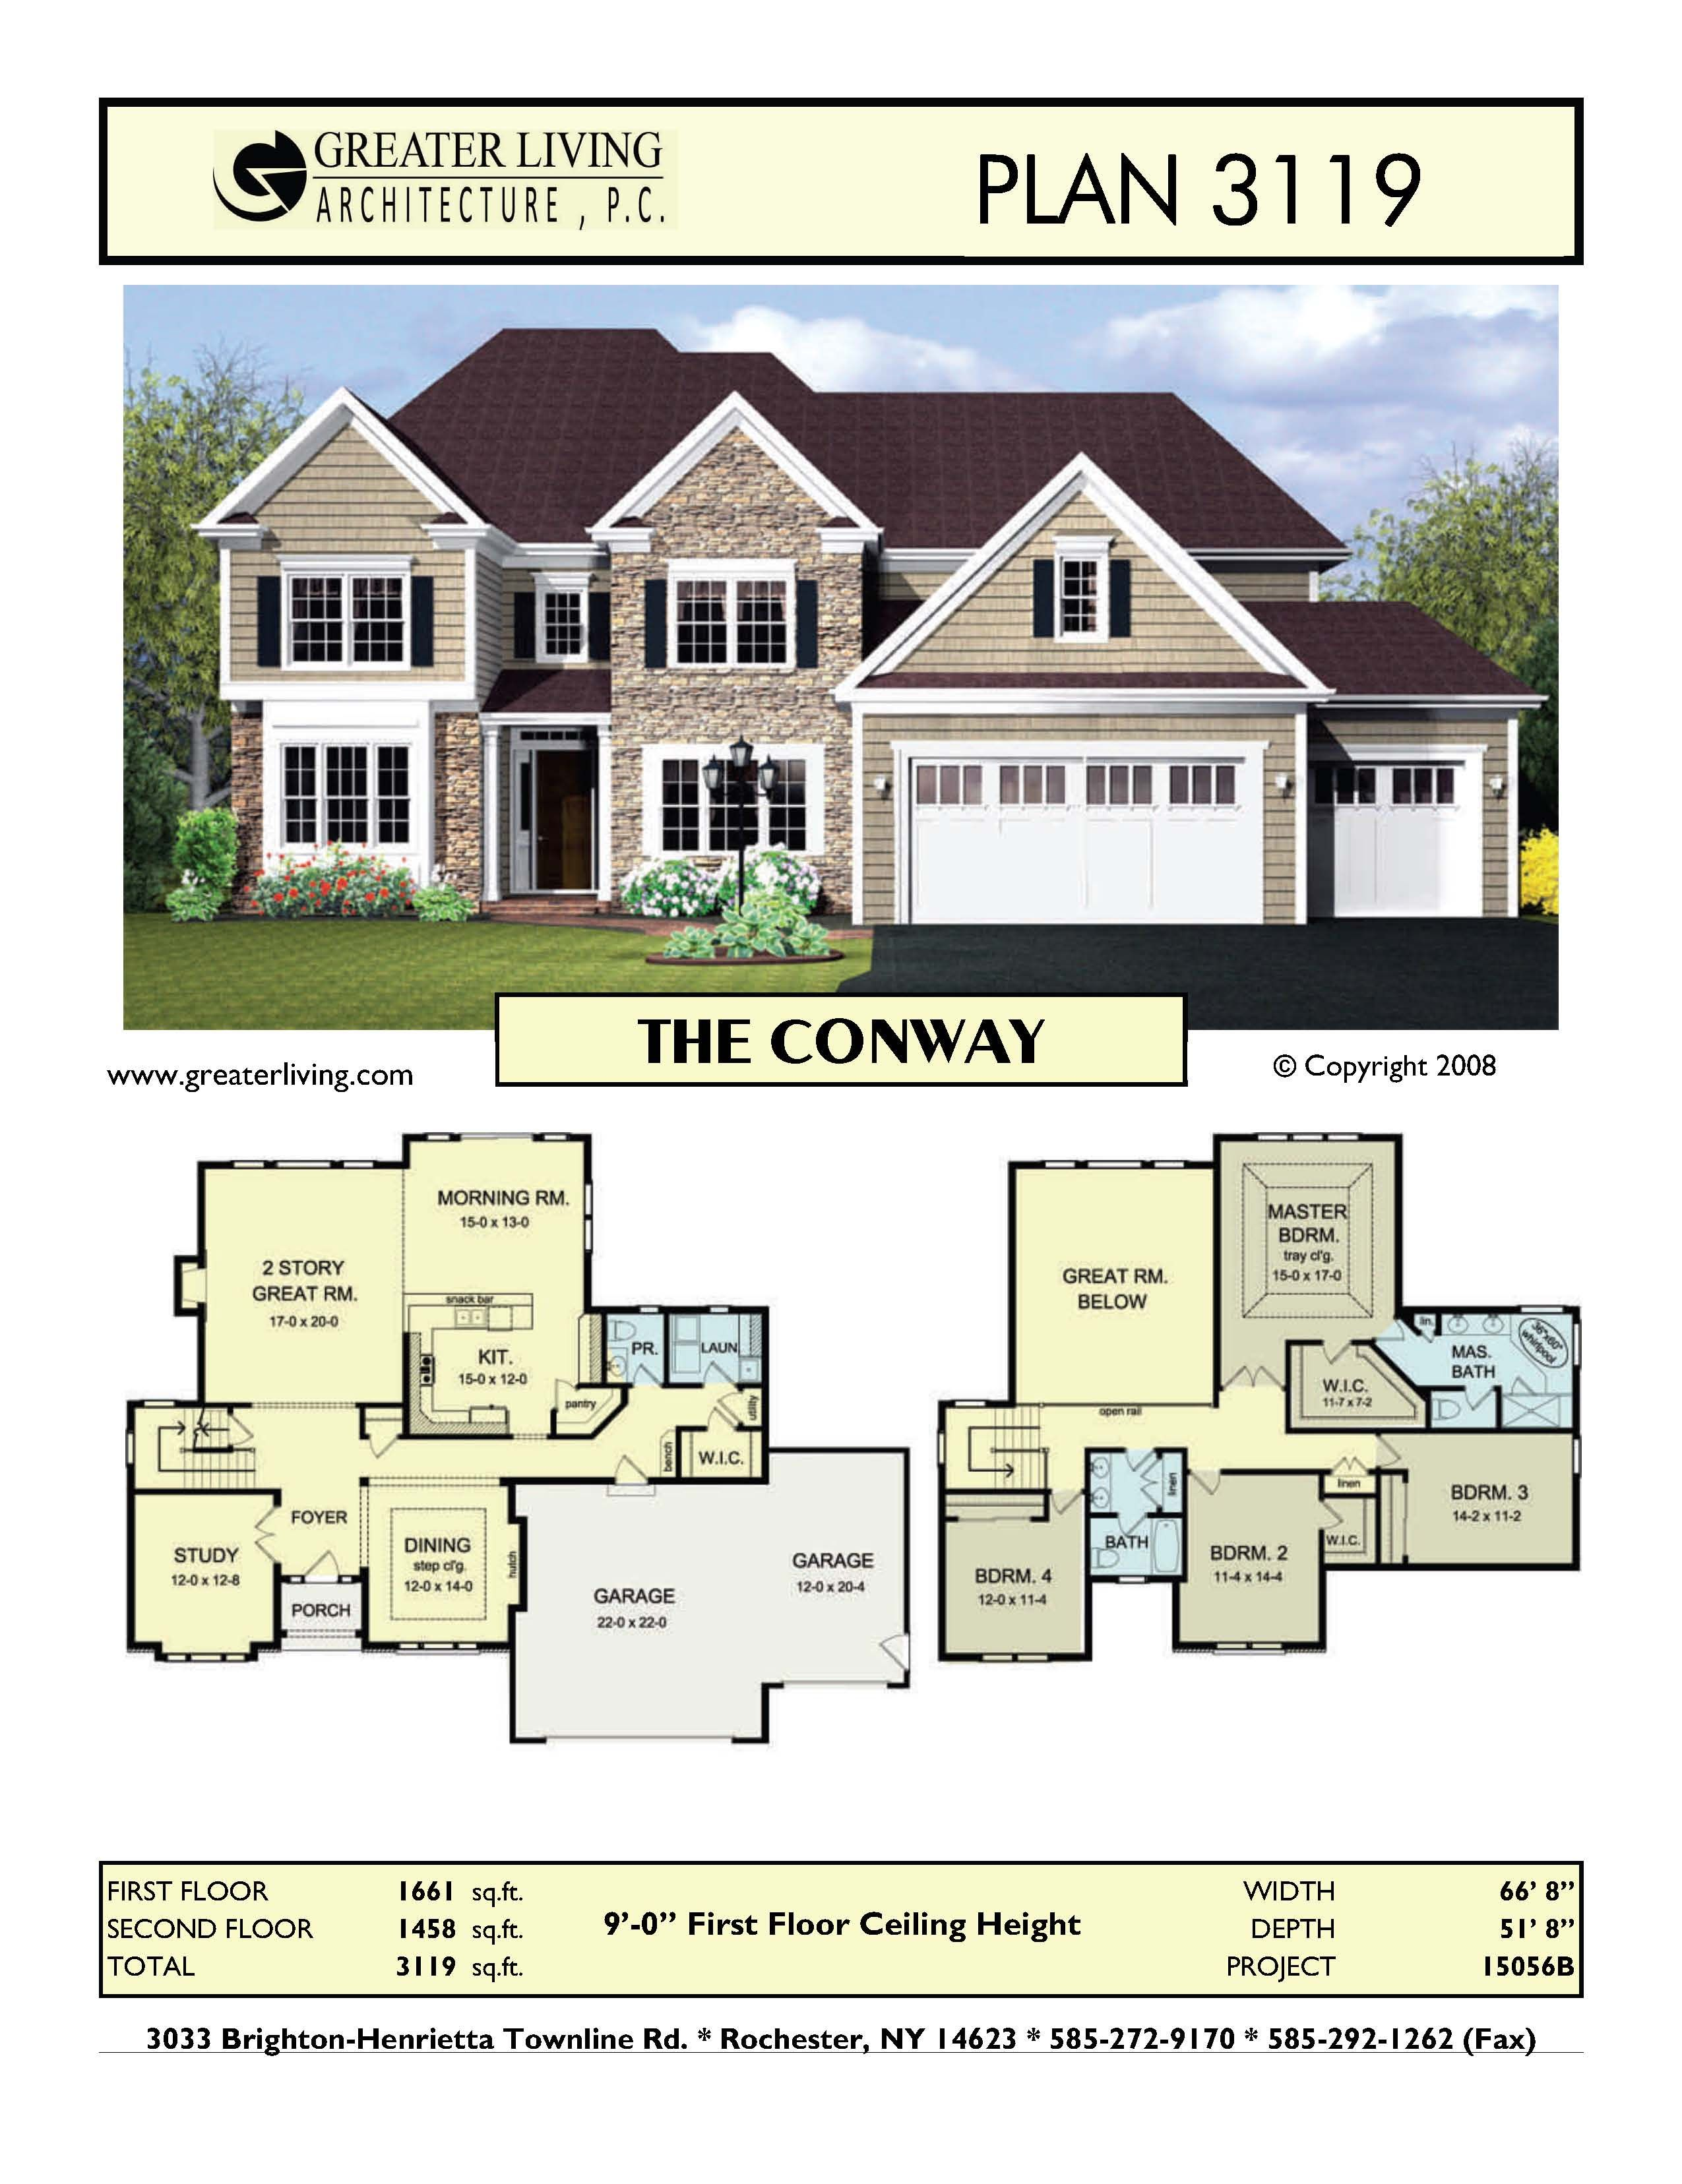 Plan 3119: THE CONWAY | My dream home in 2019 | 4 bedroom ... on walkout home plans, vintage style home plans, home time home plans, miranda home plans,